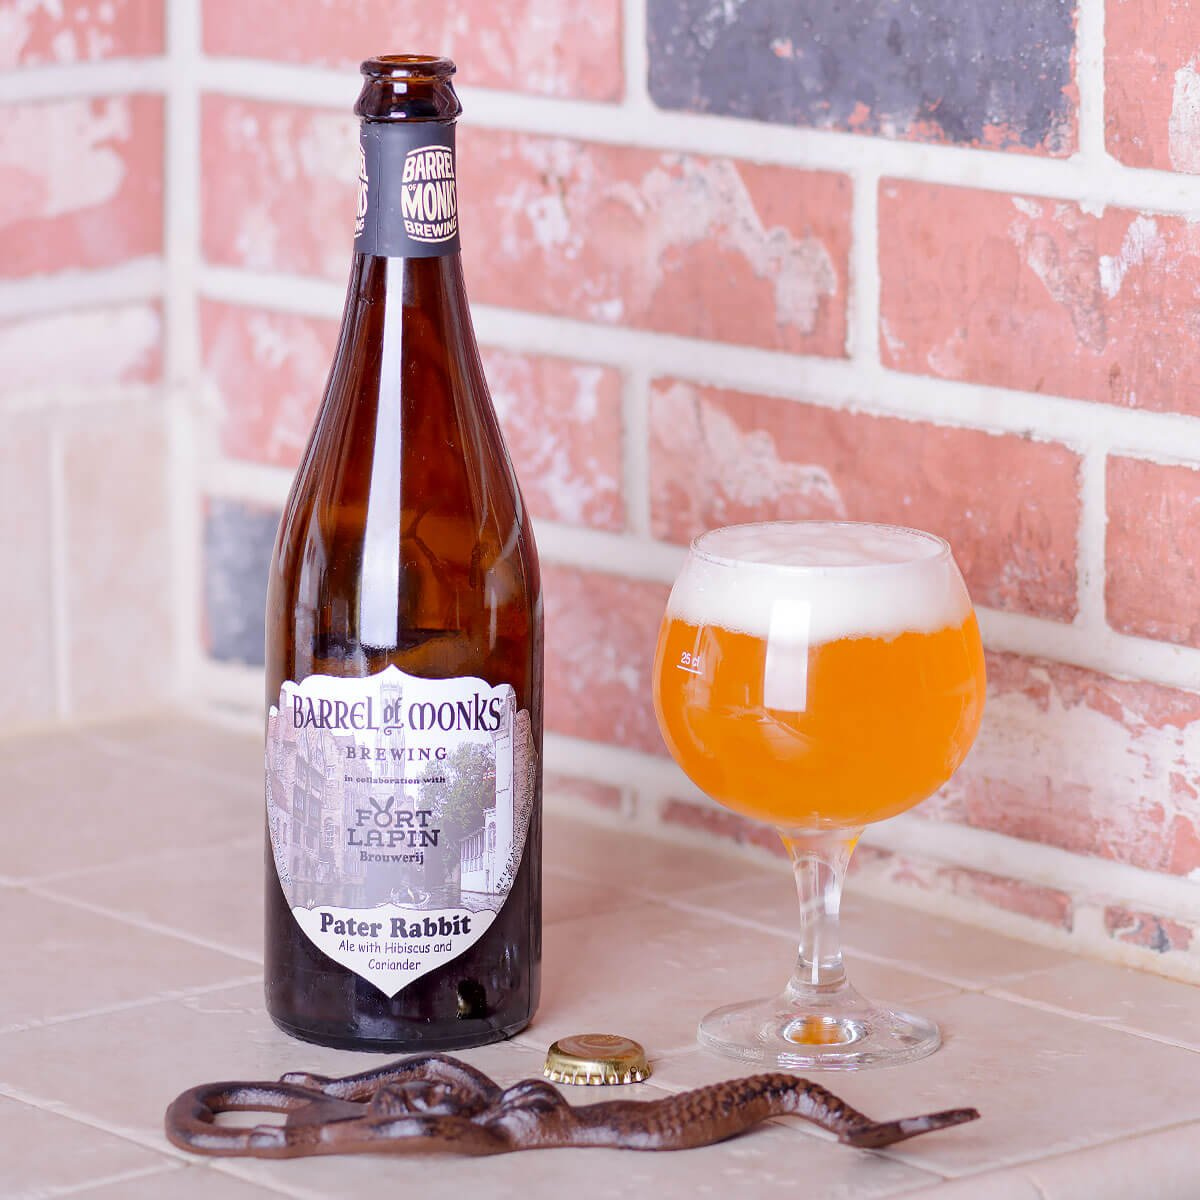 Peter Rabbit, a Belgian Tripel collaboratively brewed by Barrel of Monks Brewing and Fort Lapin Brouwerij